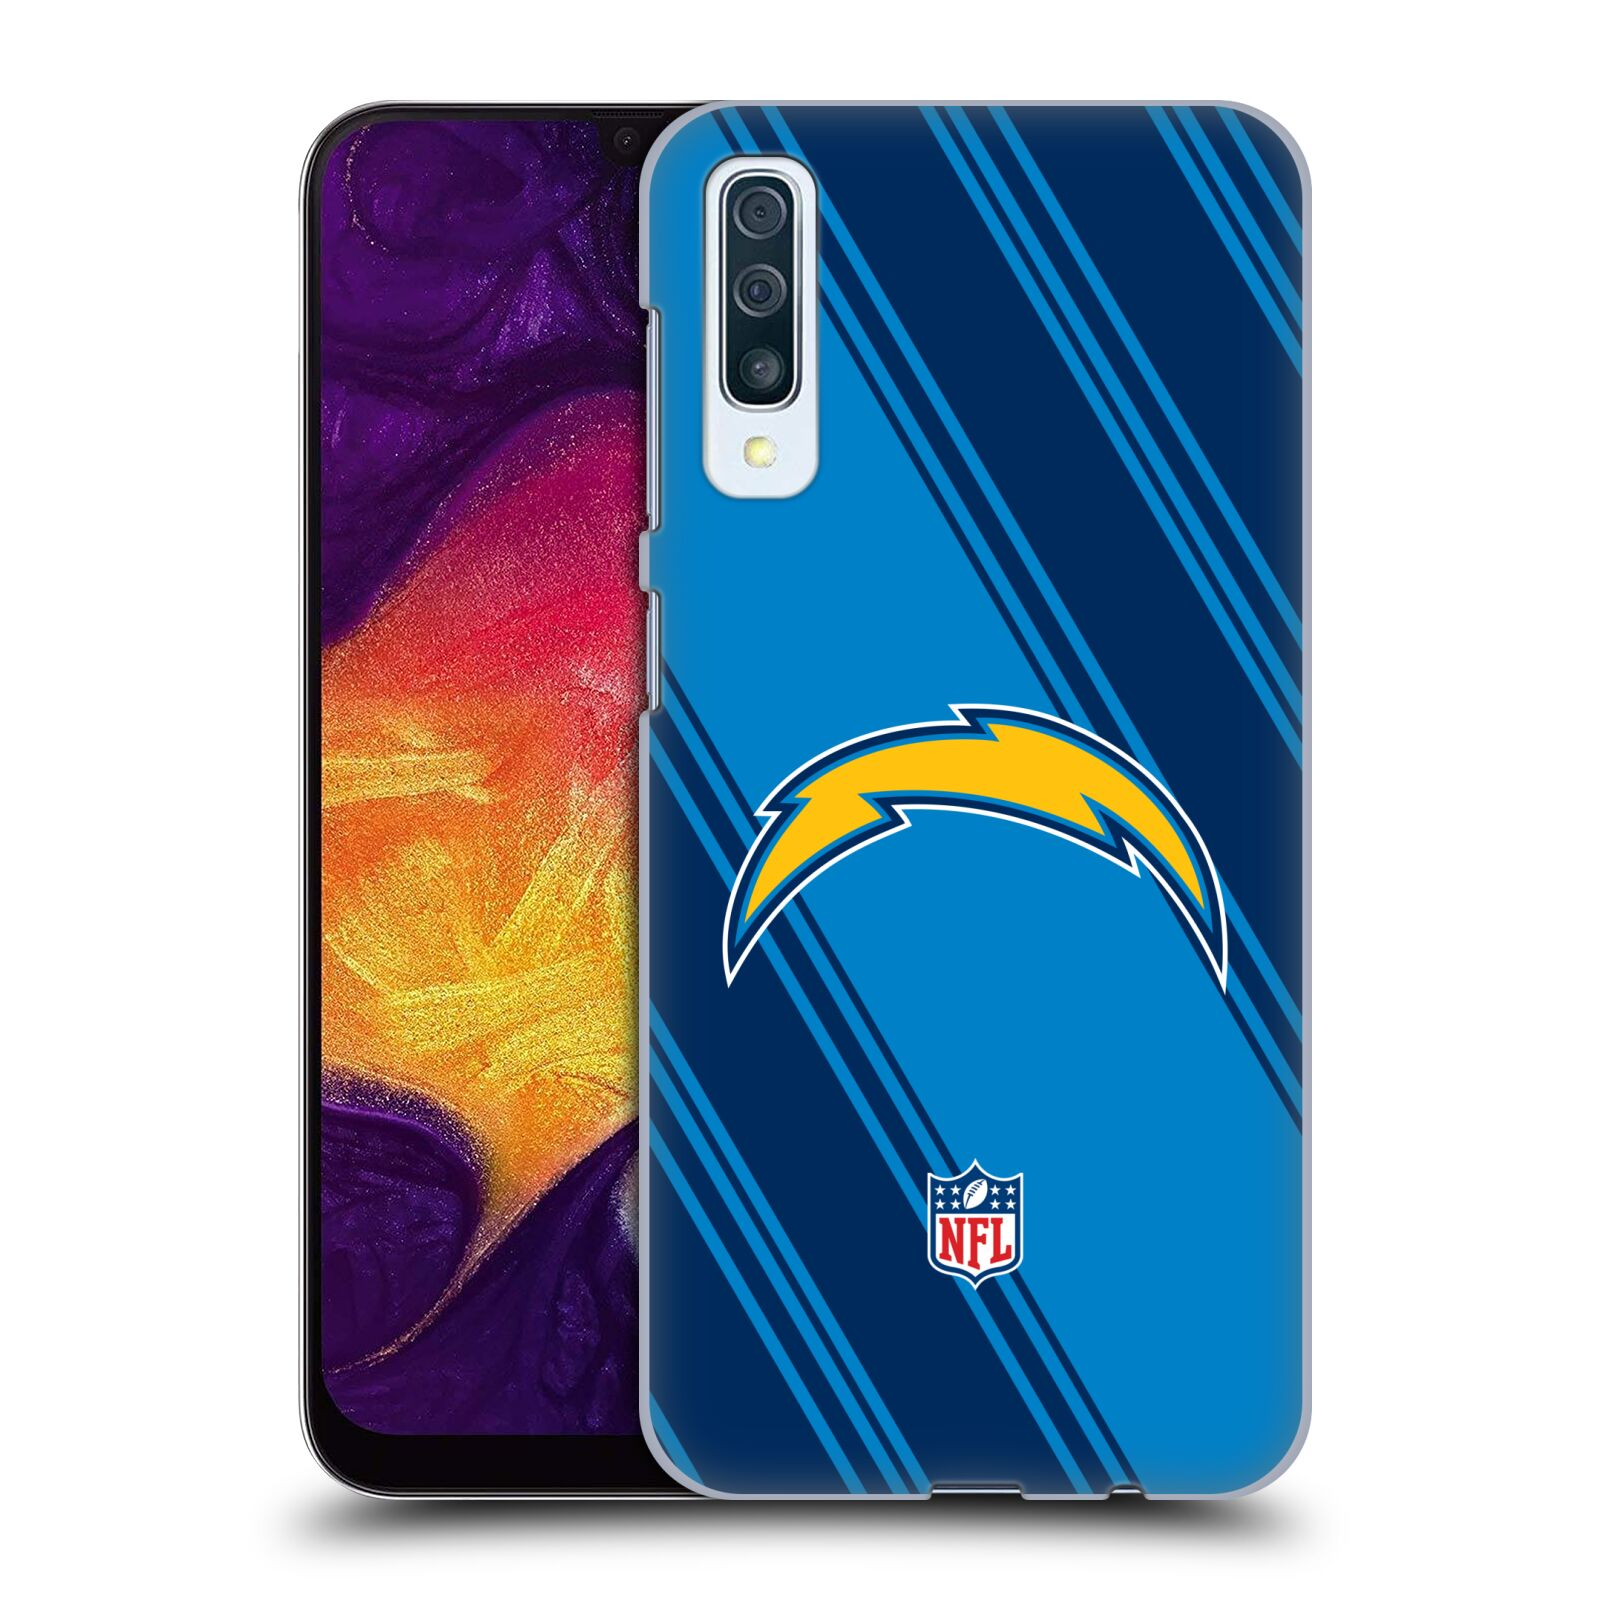 Official NFL 2017/18 Los Angeles Chargers Stripes Case for Samsung Galaxy A50s (2019)